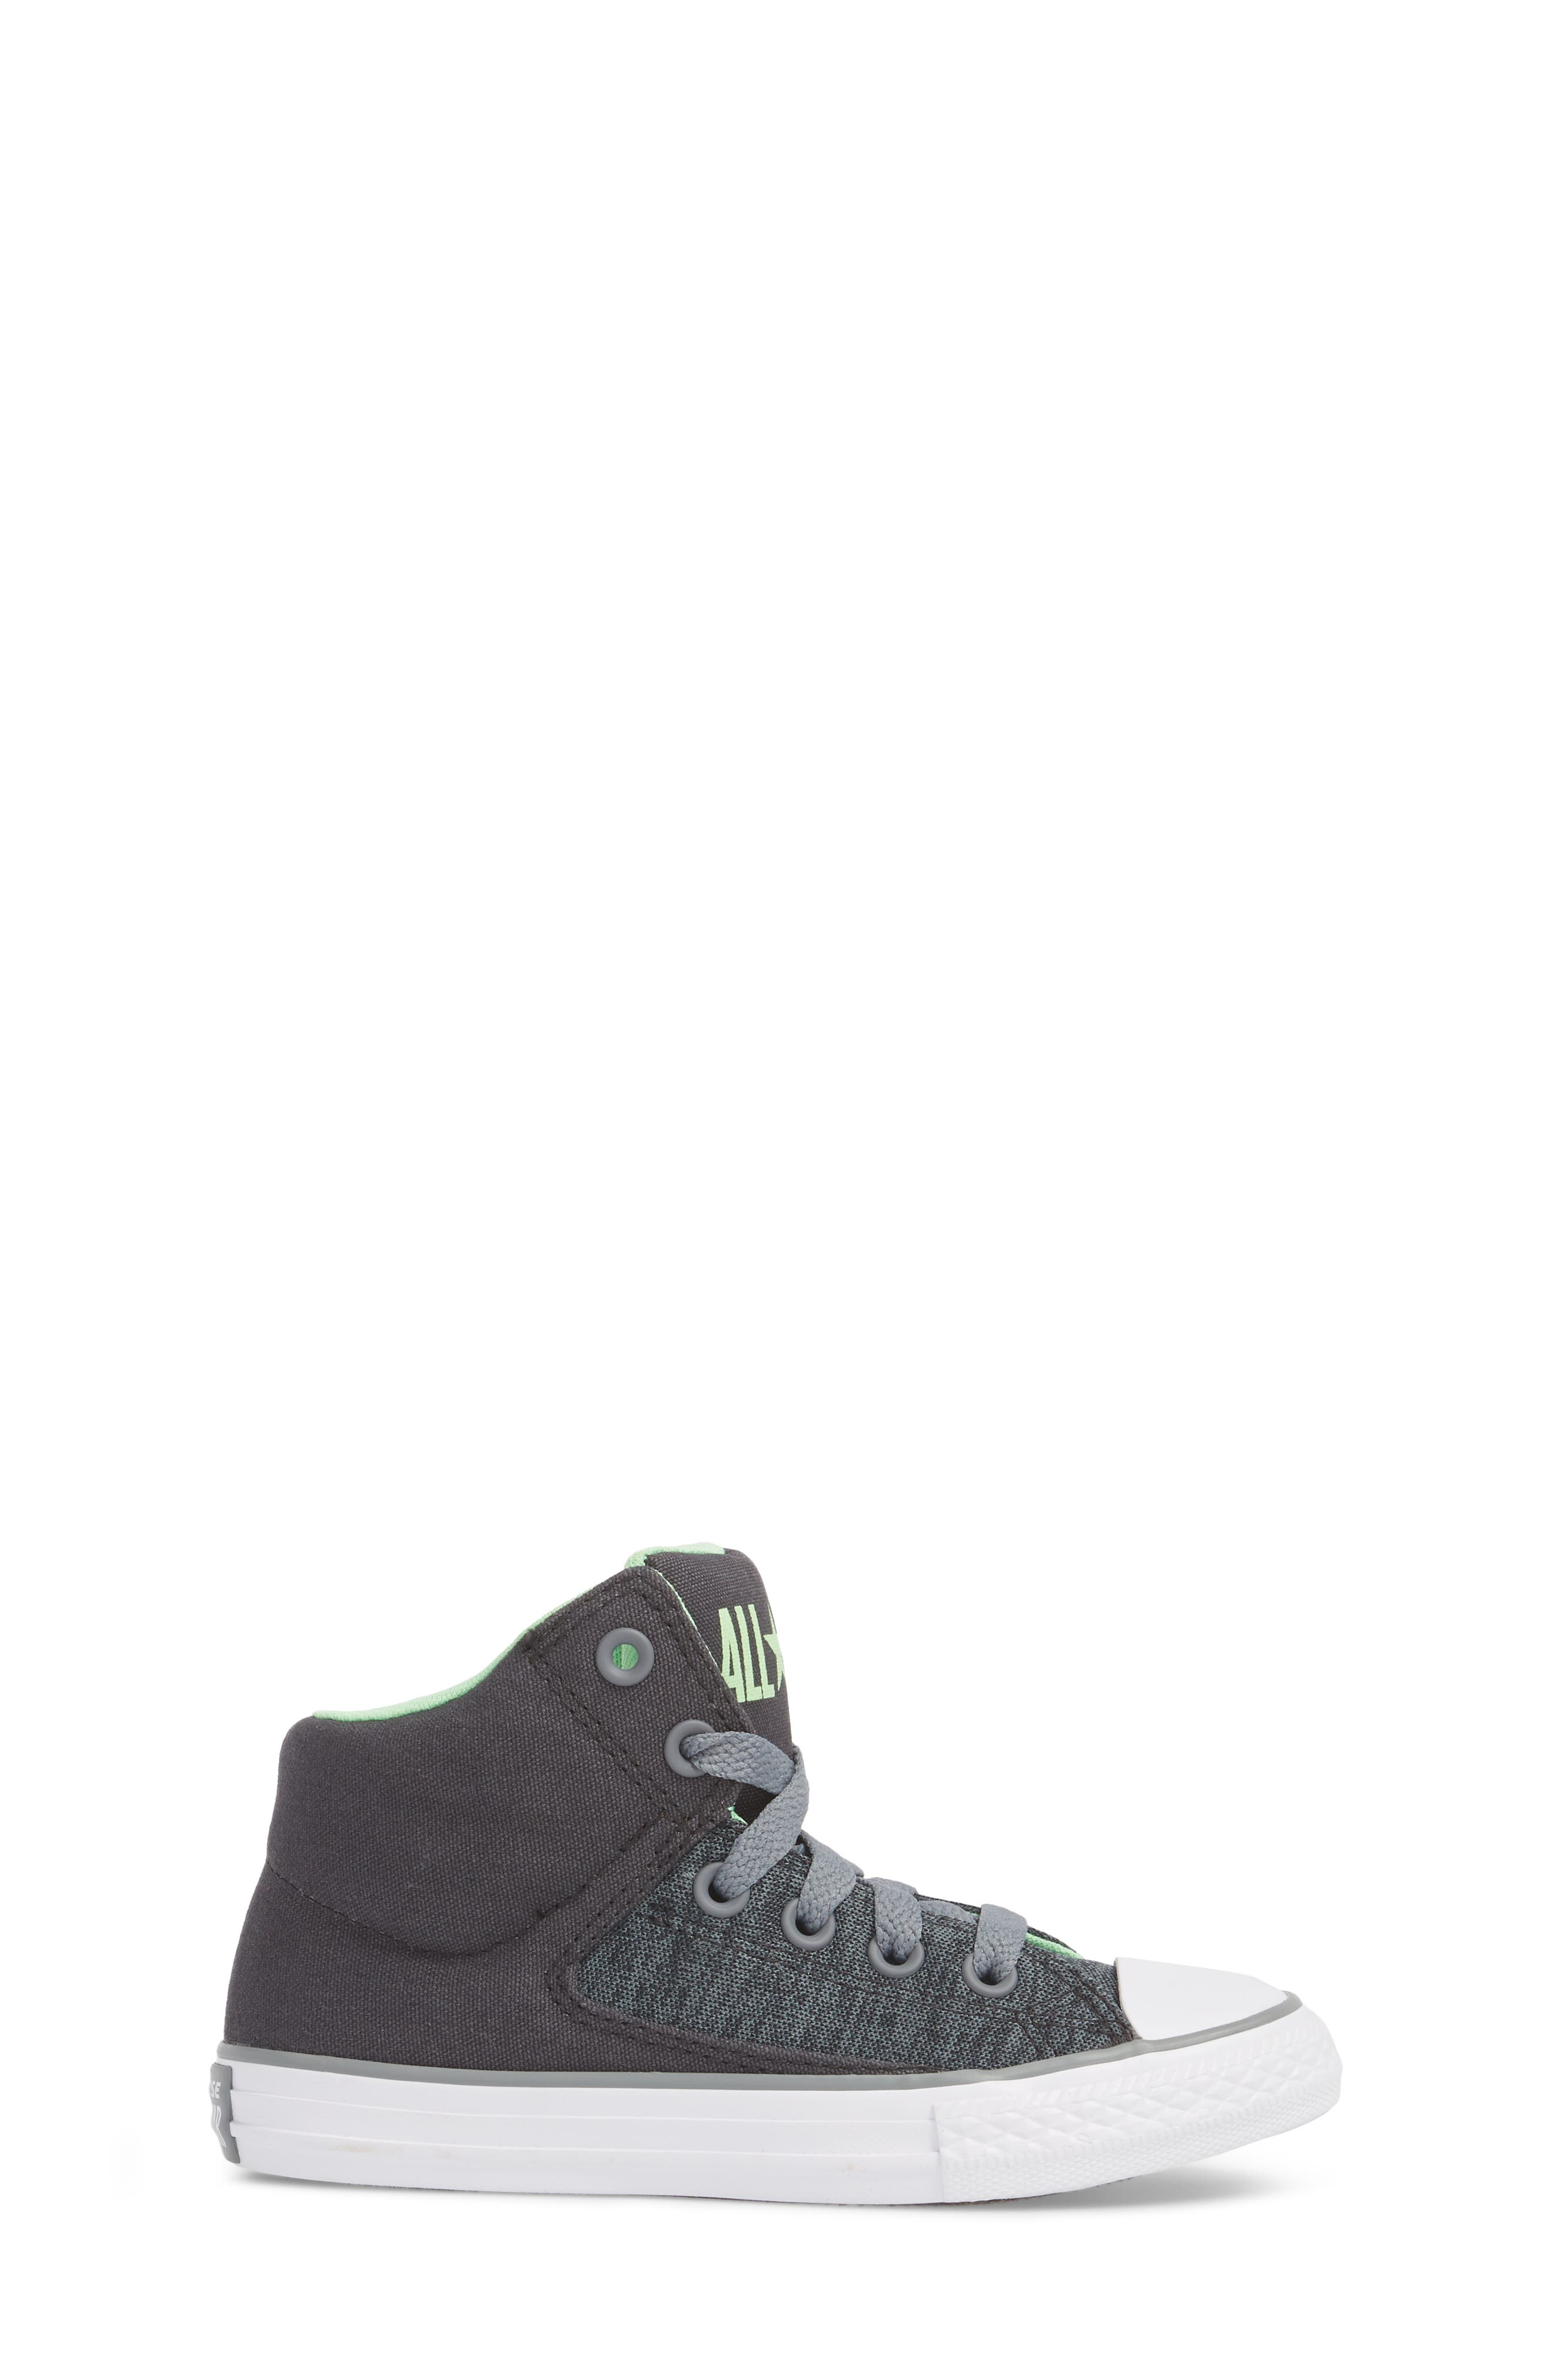 Chuck Taylor<sup>®</sup> All Star<sup>®</sup> High Street High Top Sneaker,                             Alternate thumbnail 3, color,                             Almost Black